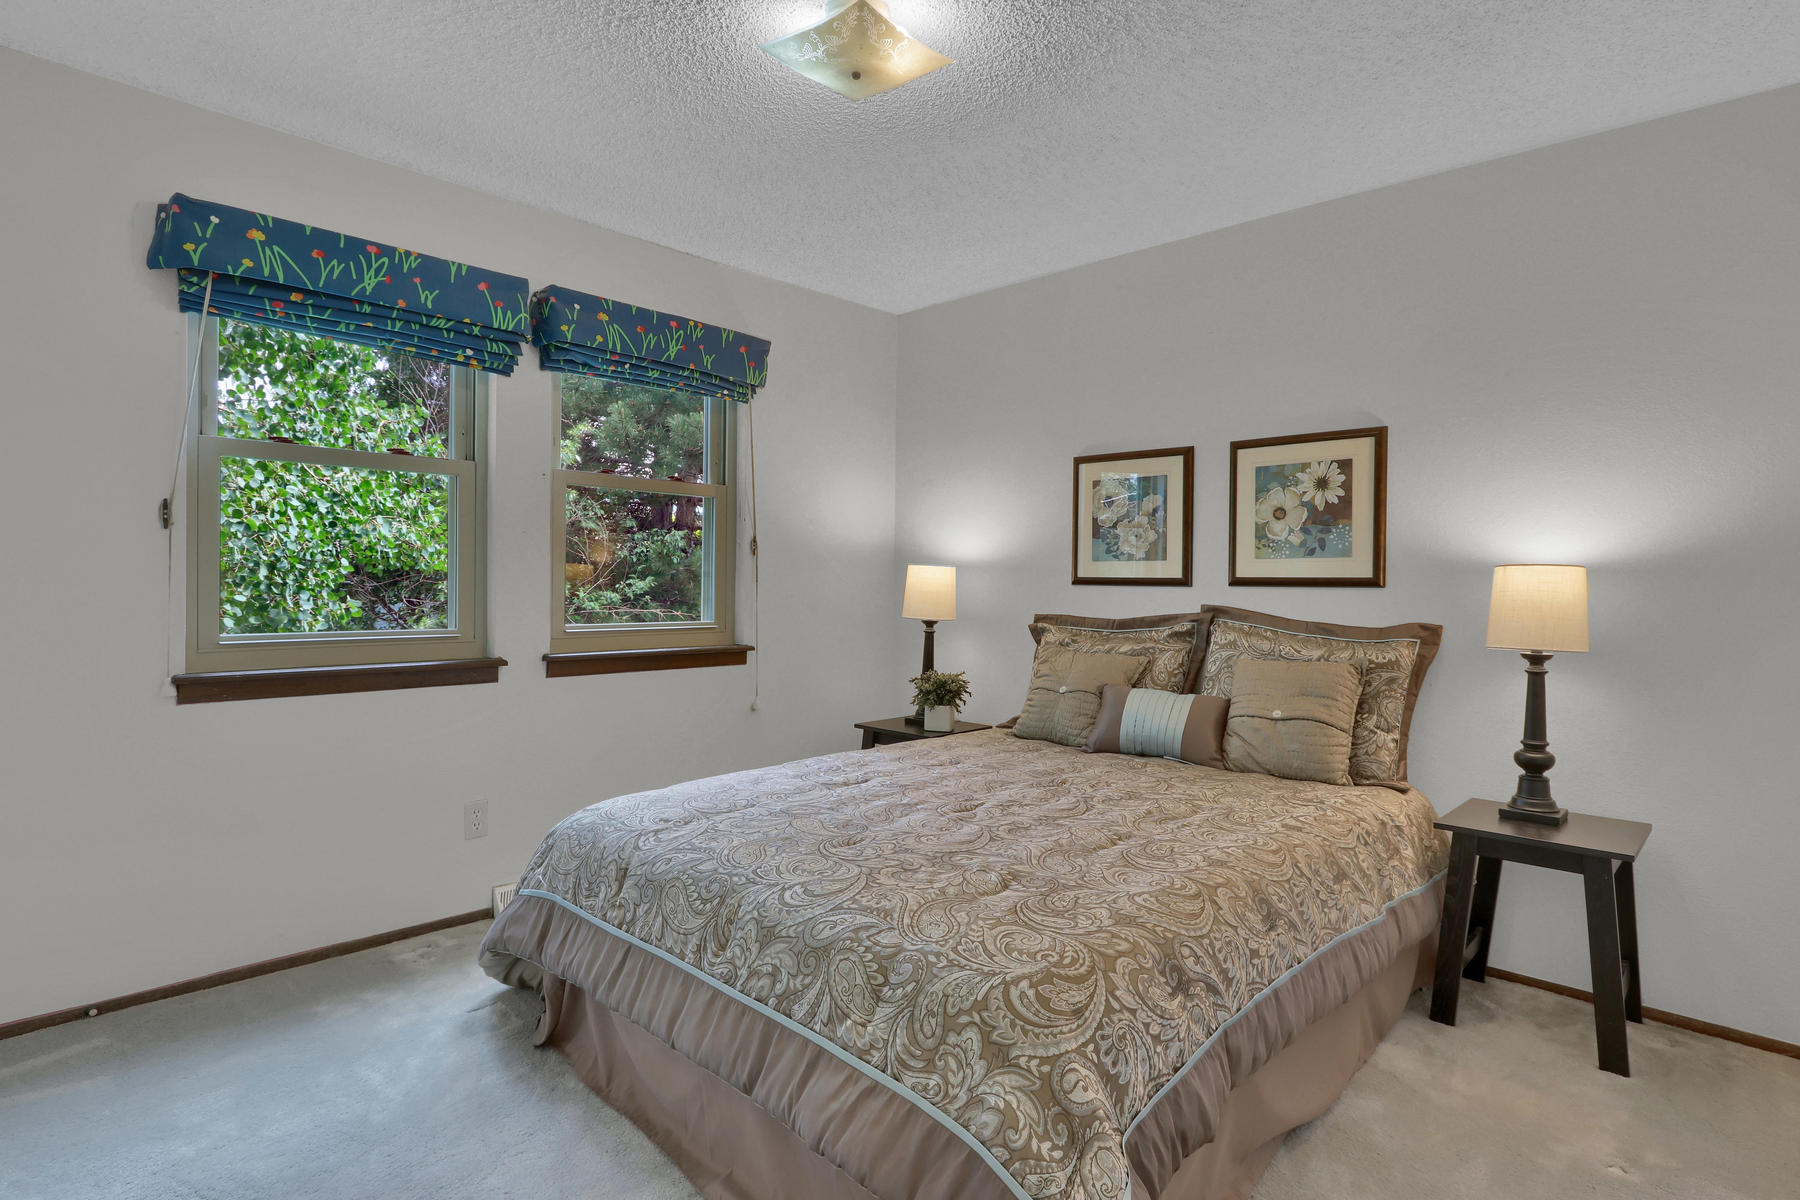 8490 Independence Way Arvada-009-018-Bedroom-MLS_Size.jpg